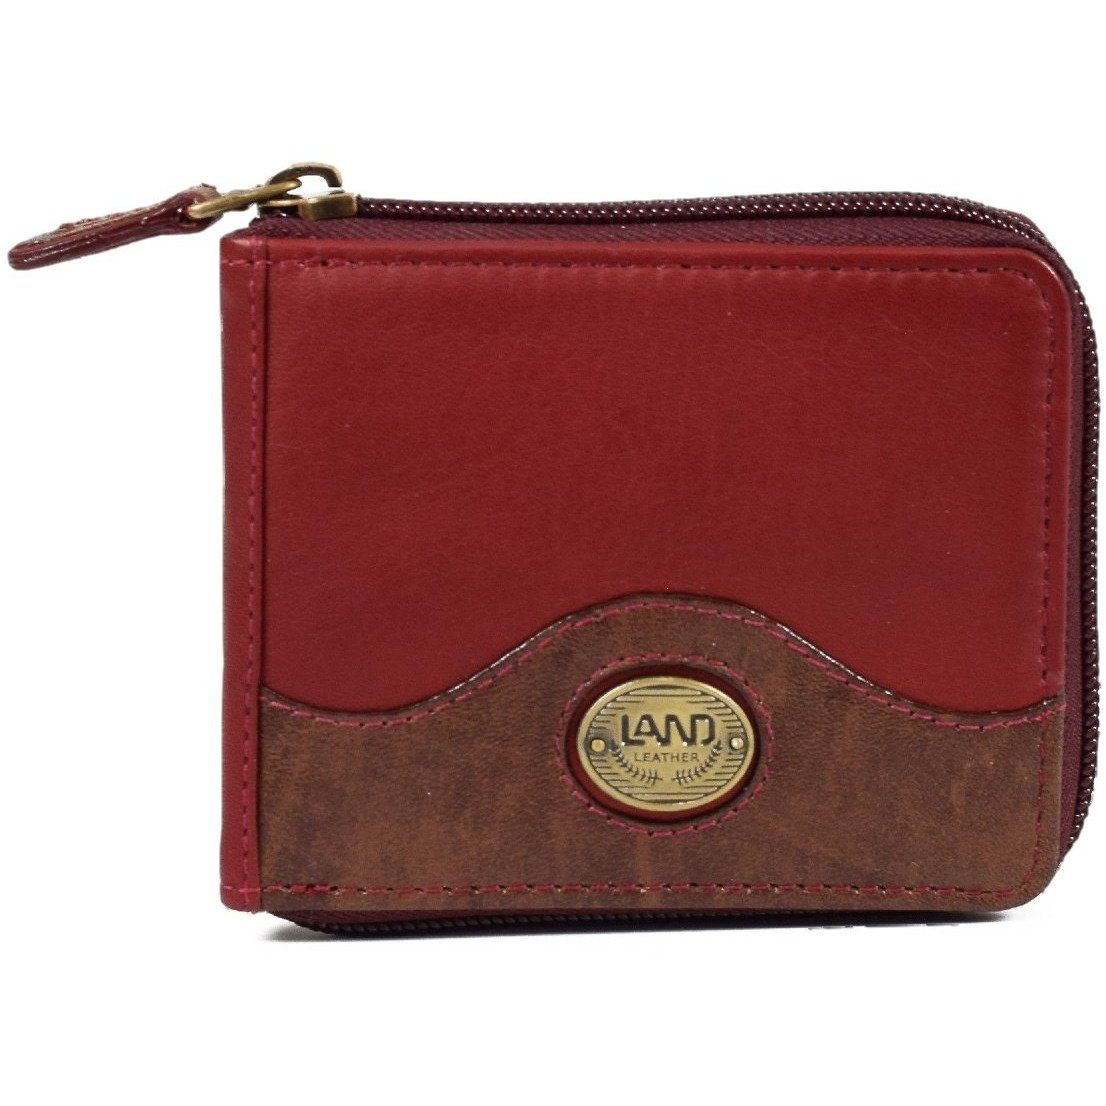 Anniversary Zip Around Wallet, Wallet | LAND Leather